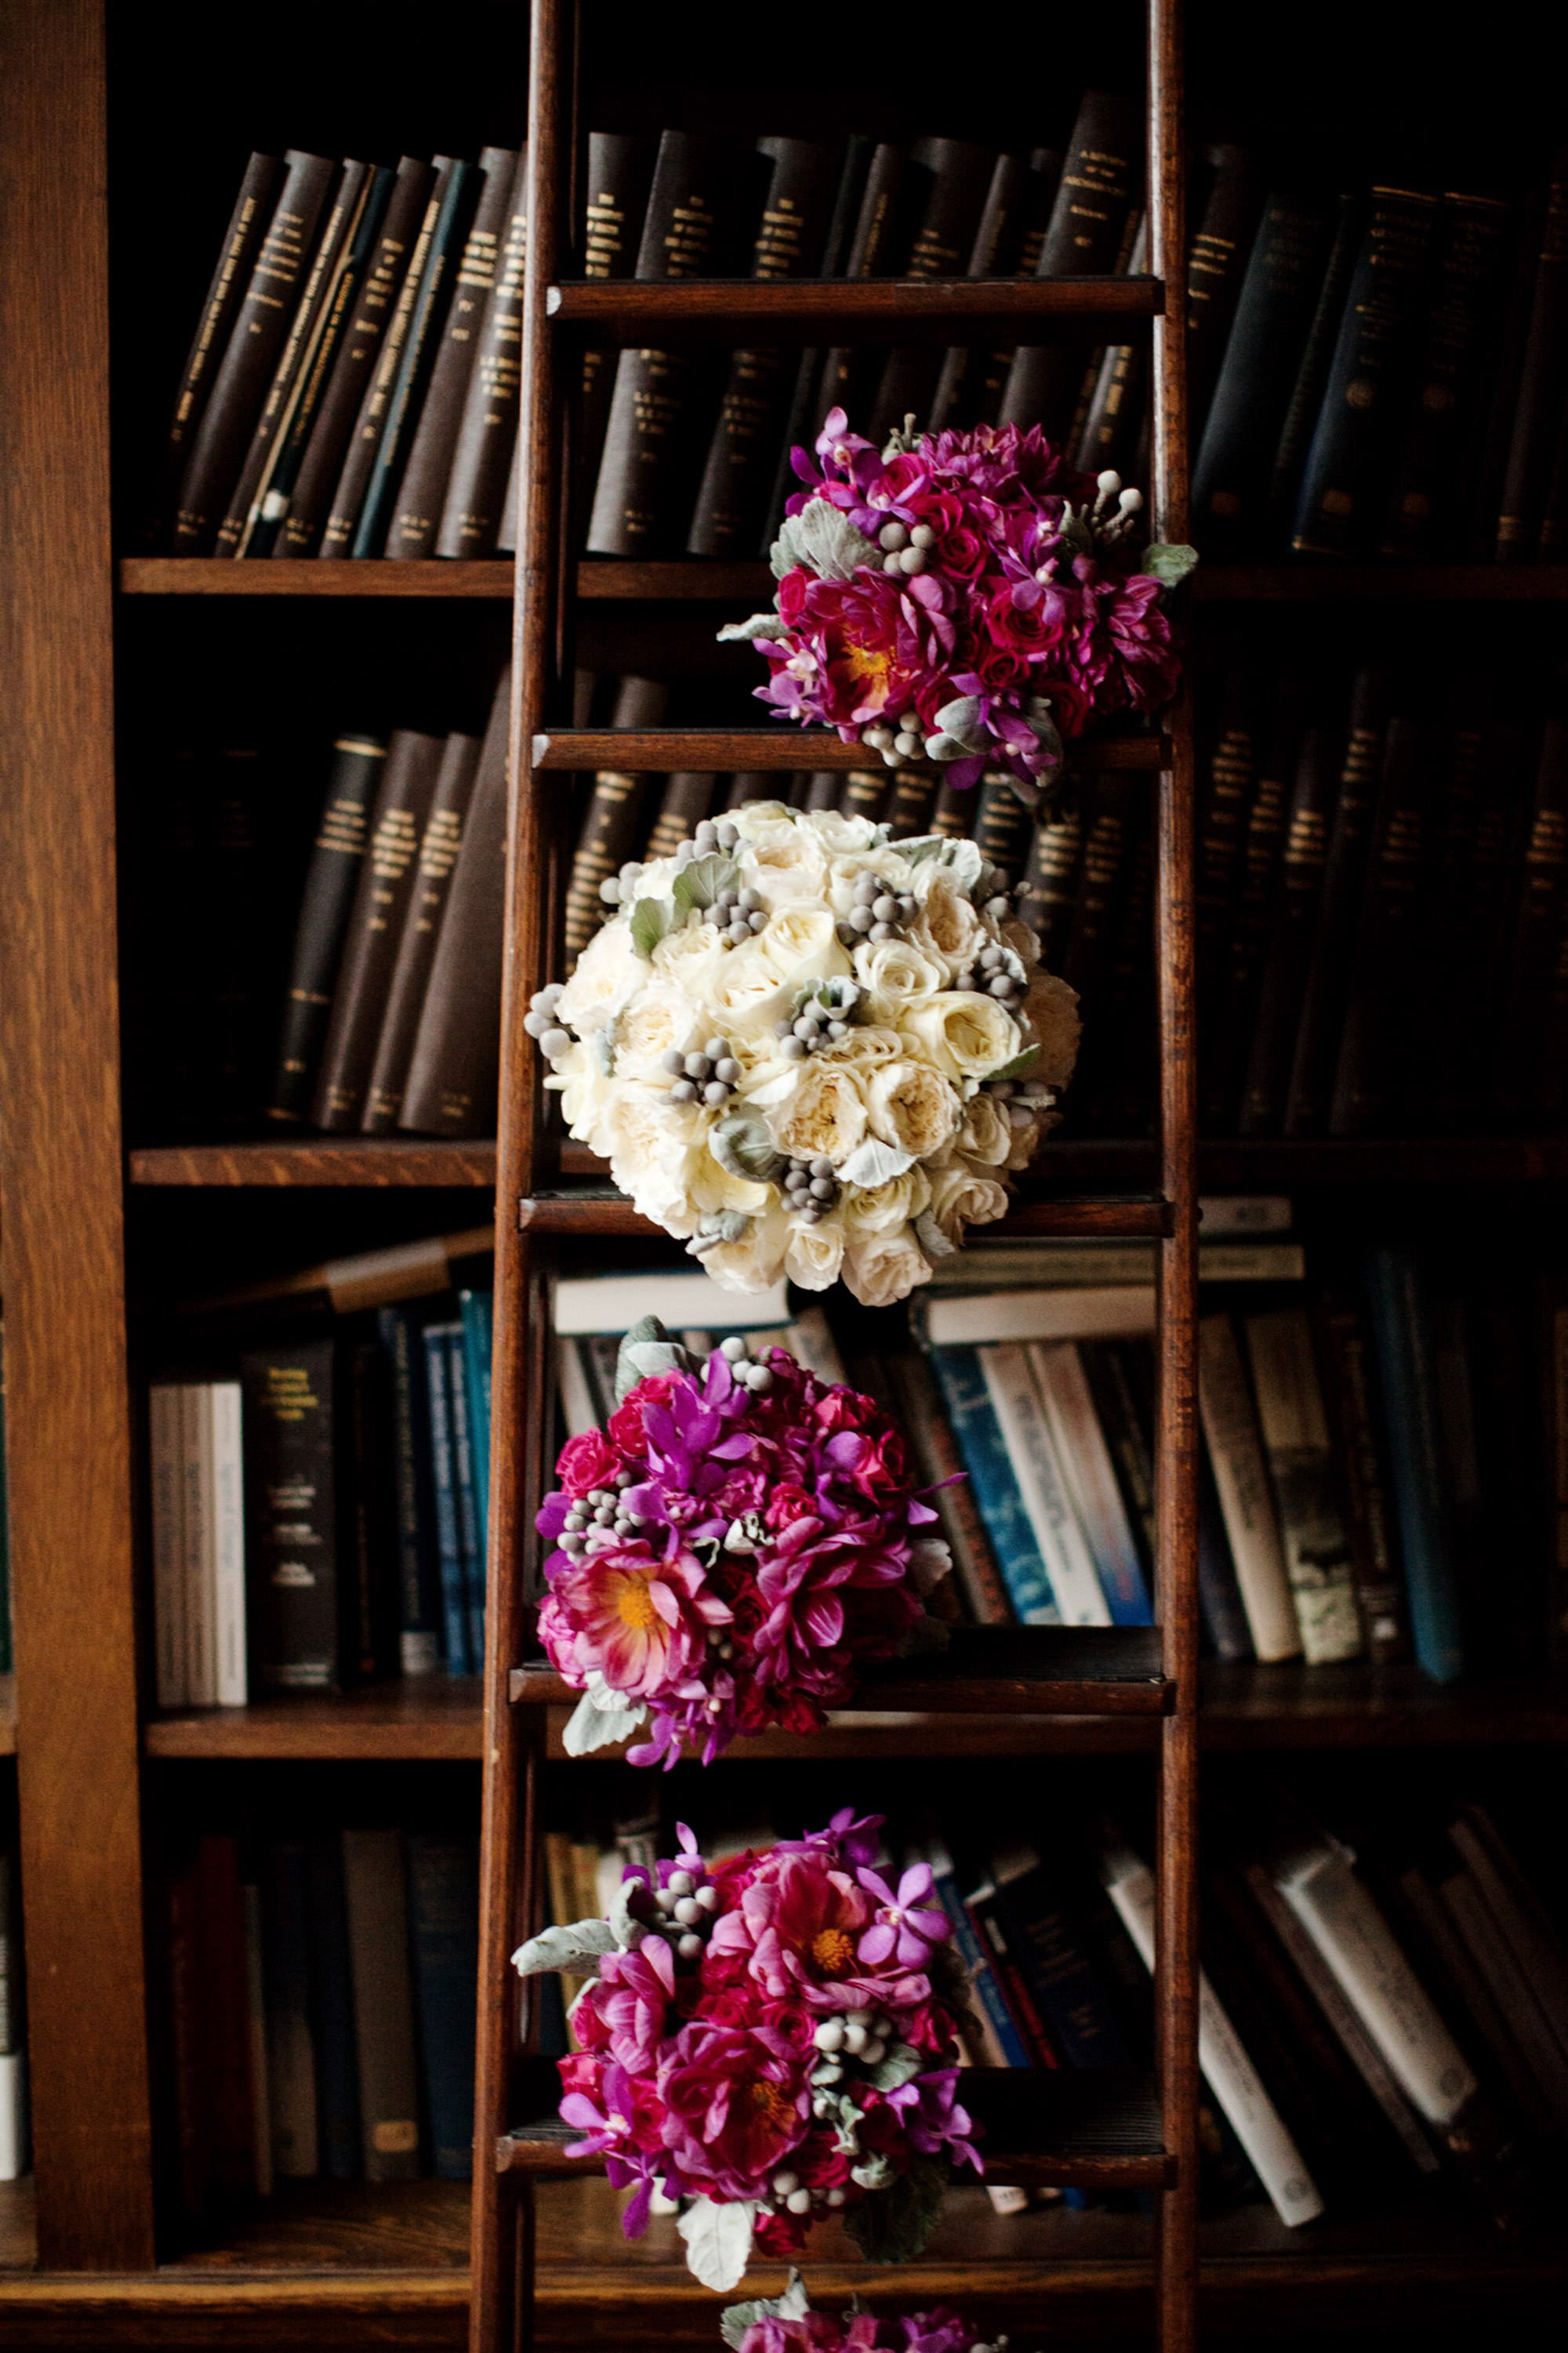 The bridal party bouquets in the library of the Carnegie Institute for Science.